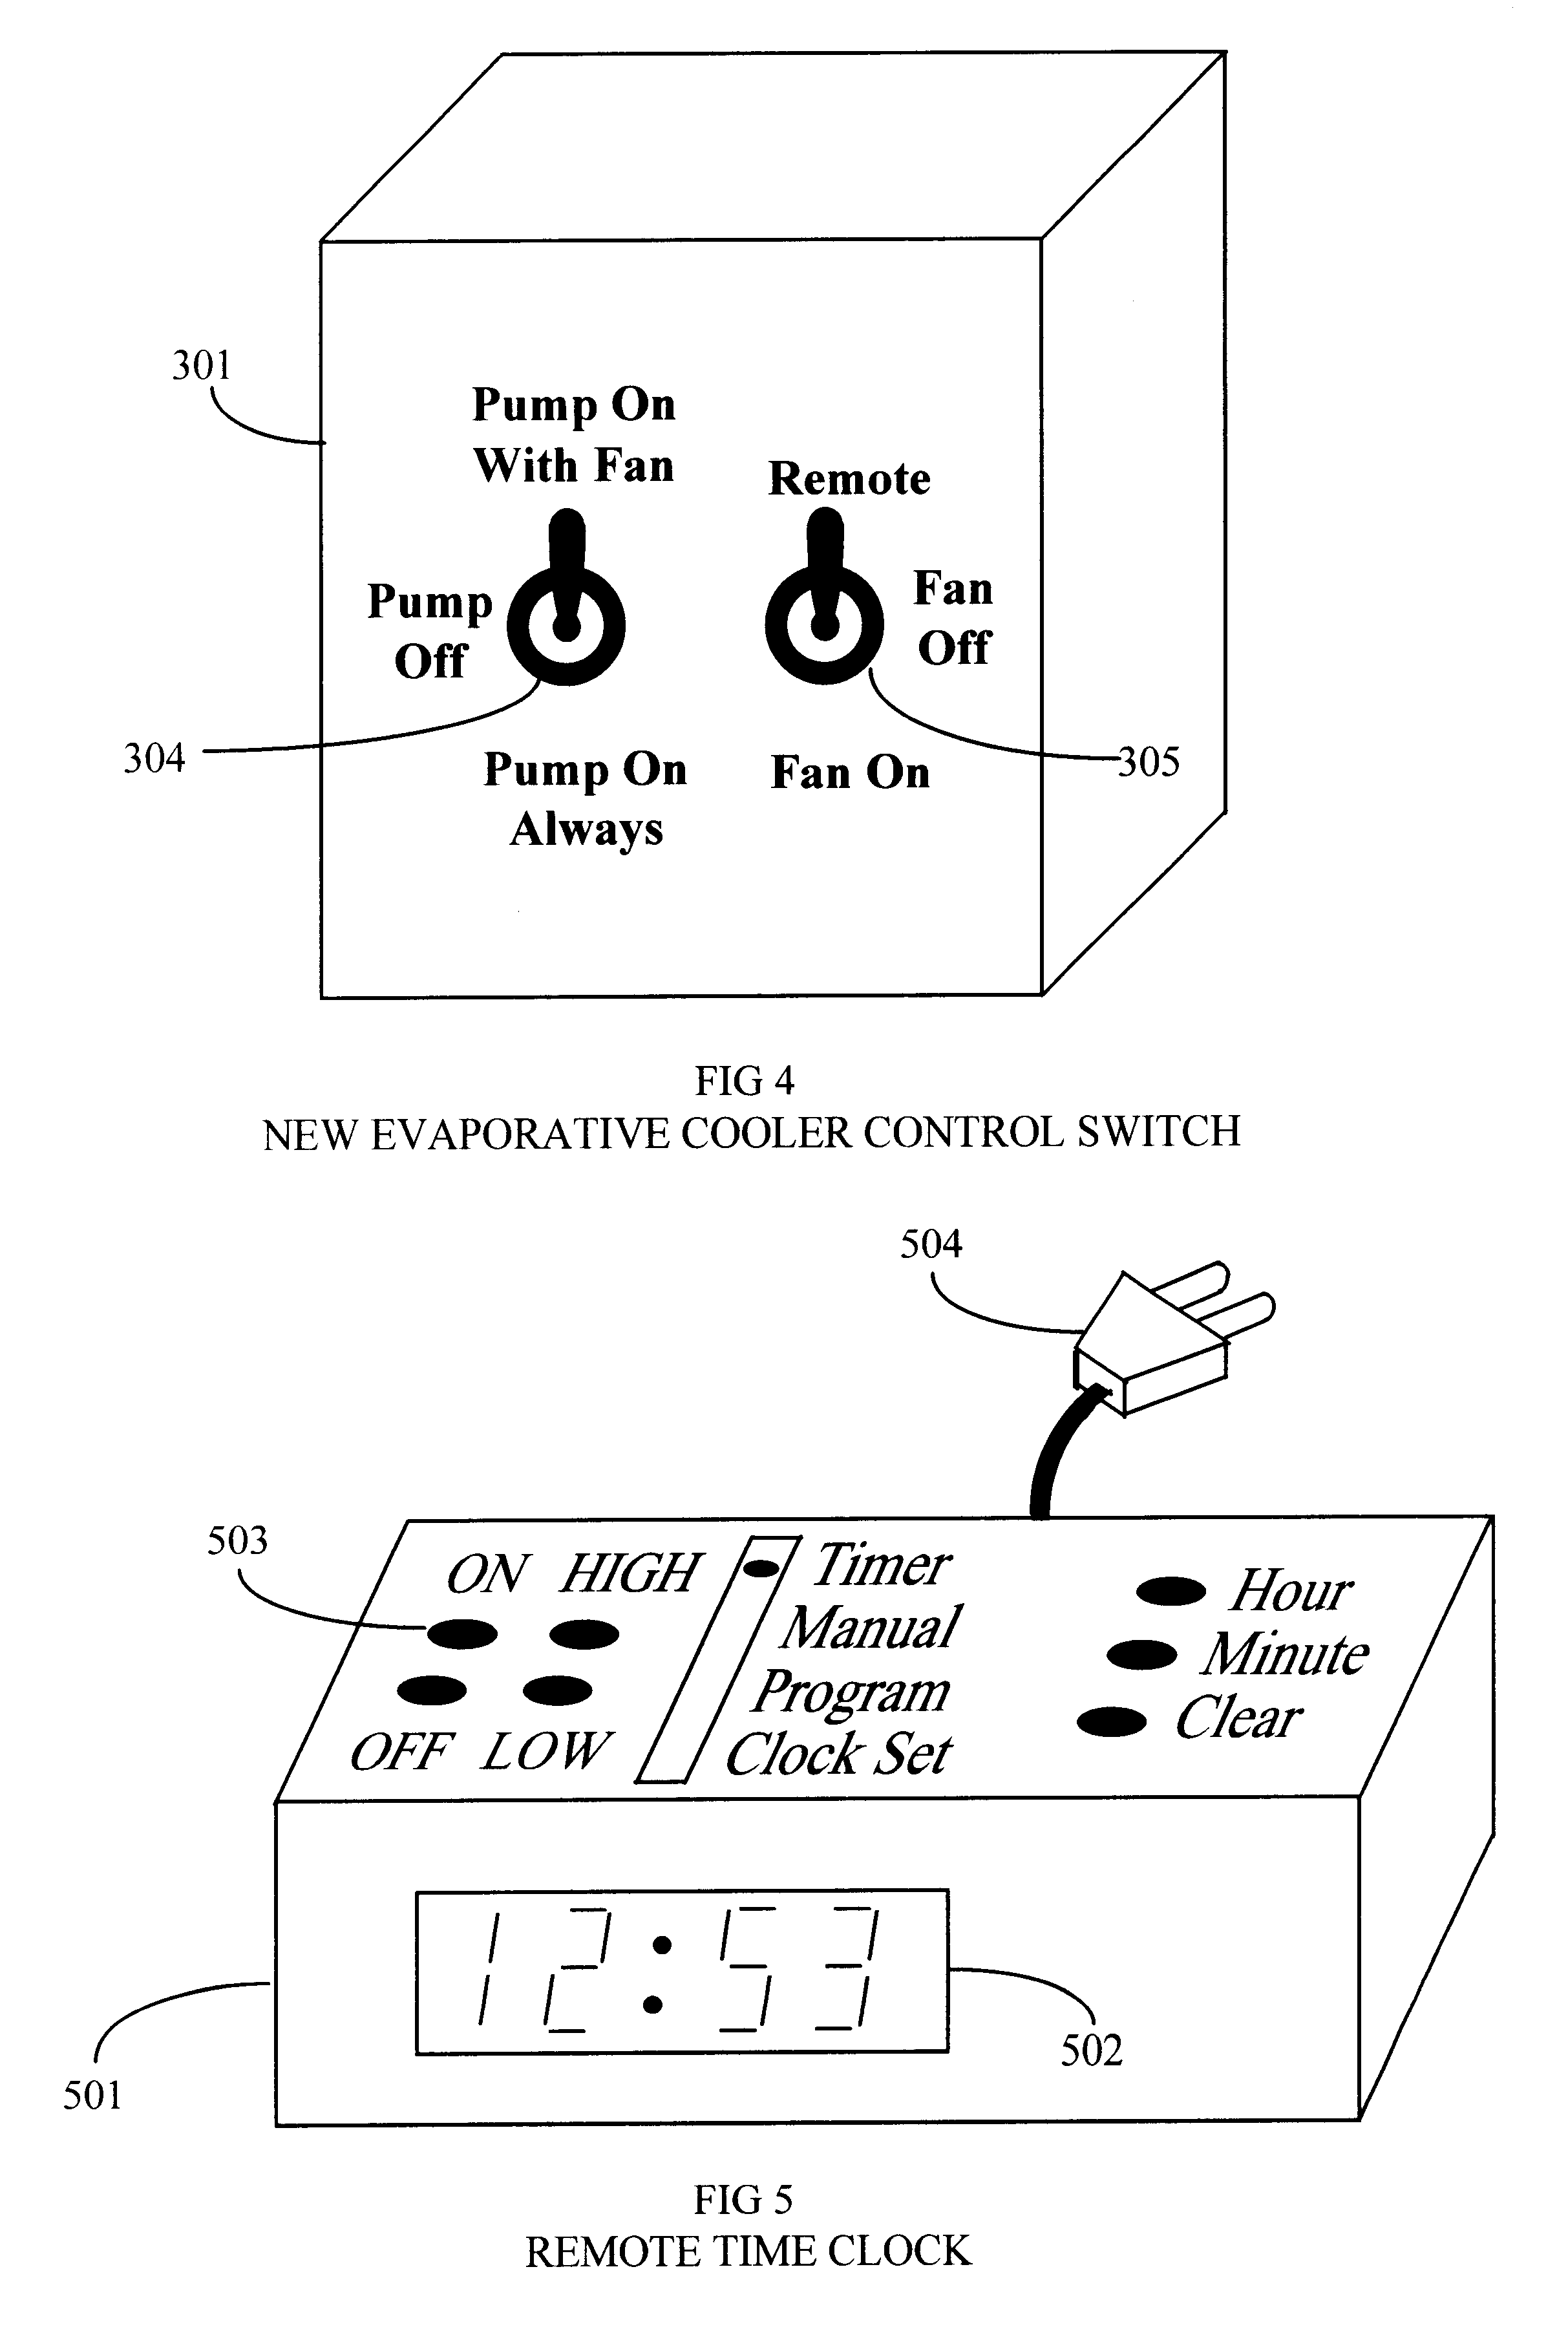 patent us remote control system for evaporative coolers patent drawing